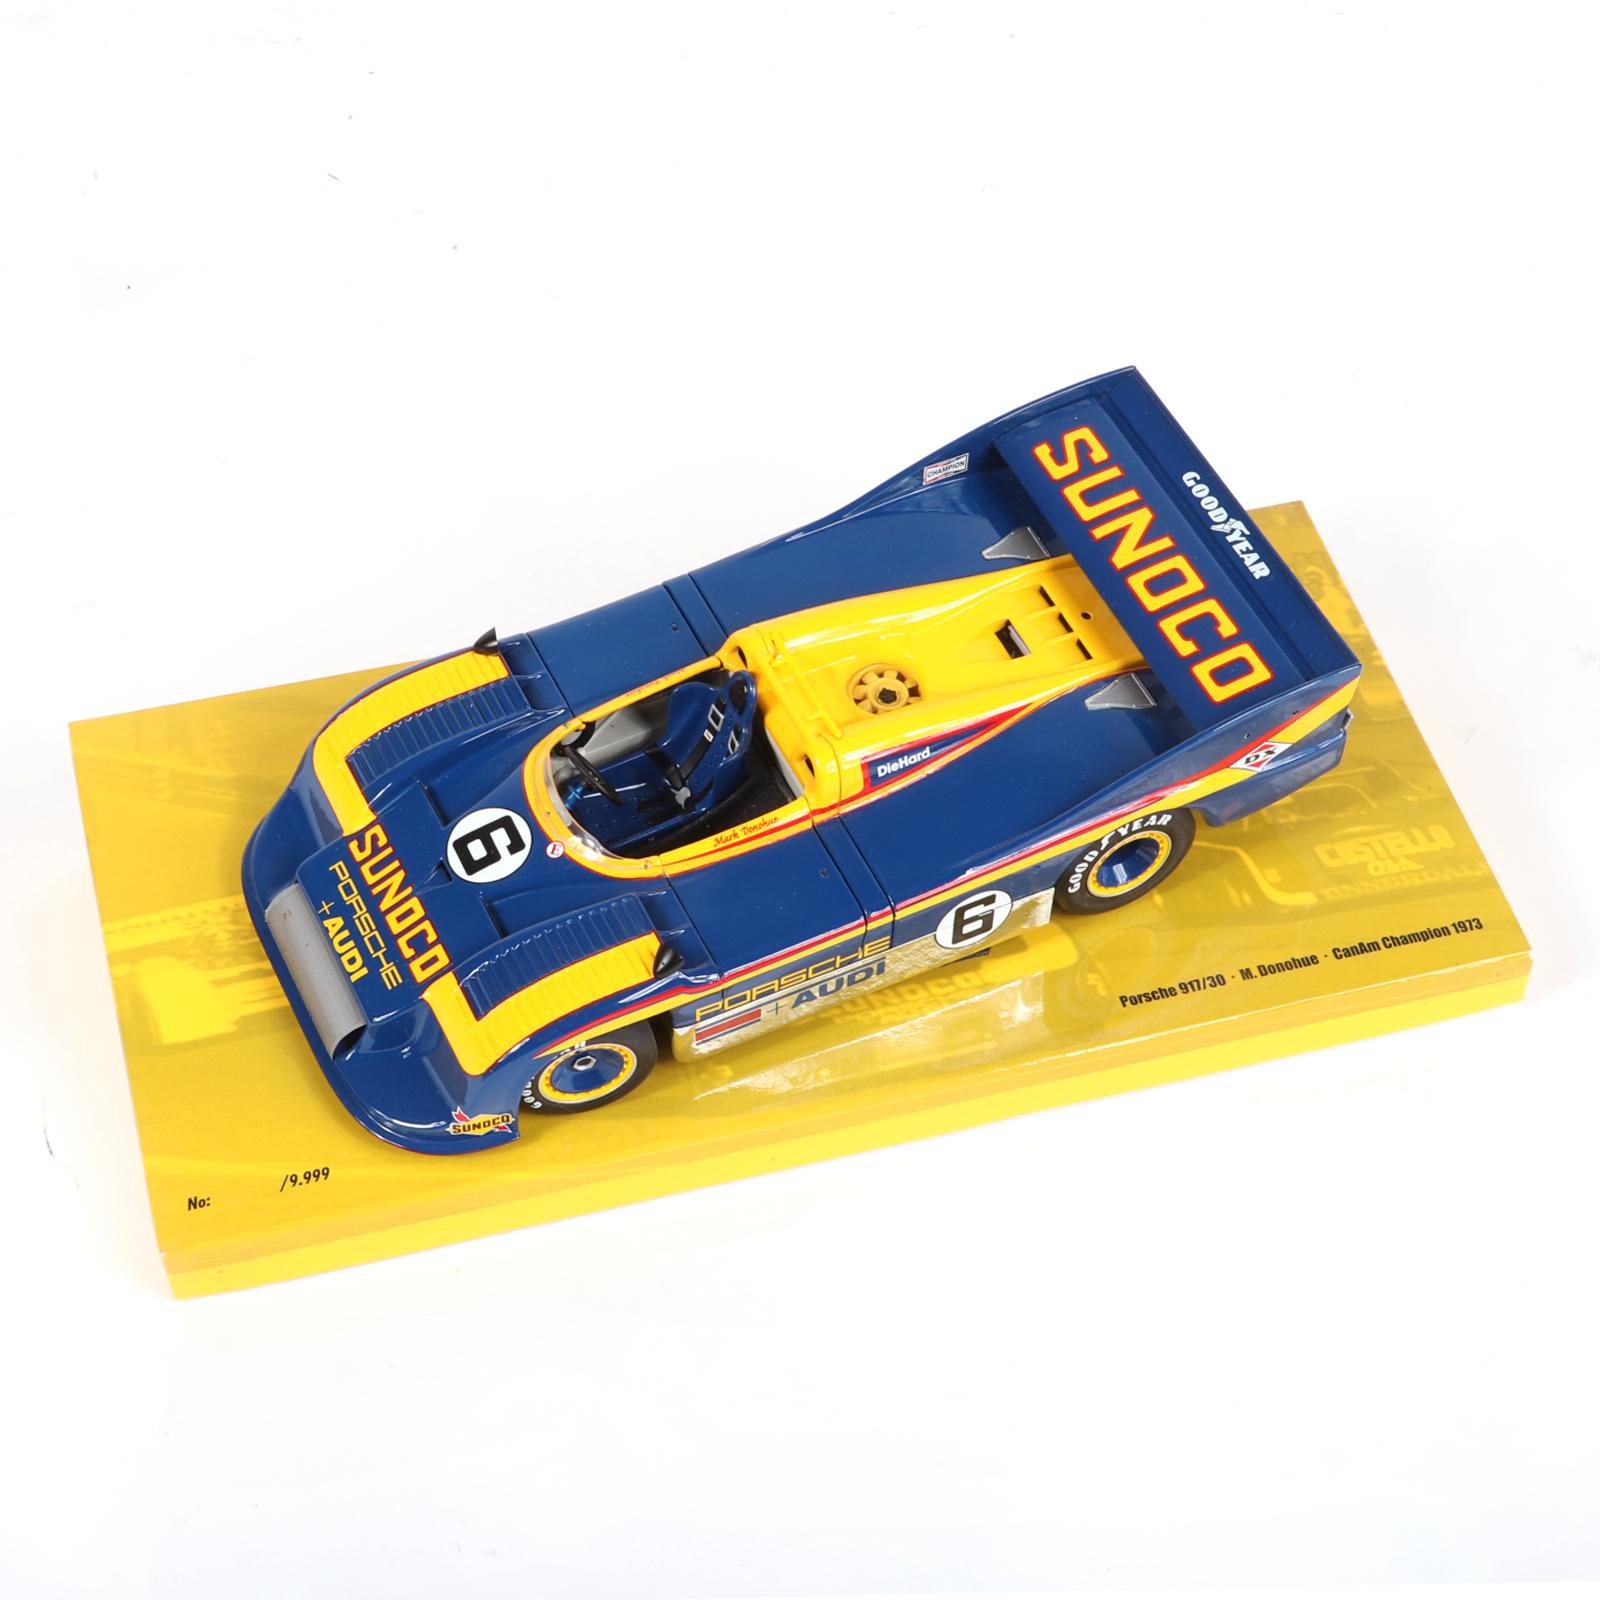 1973 Mark Donohue Sunoco Can AM Minichamps 1:18 Diecast Car in original box.